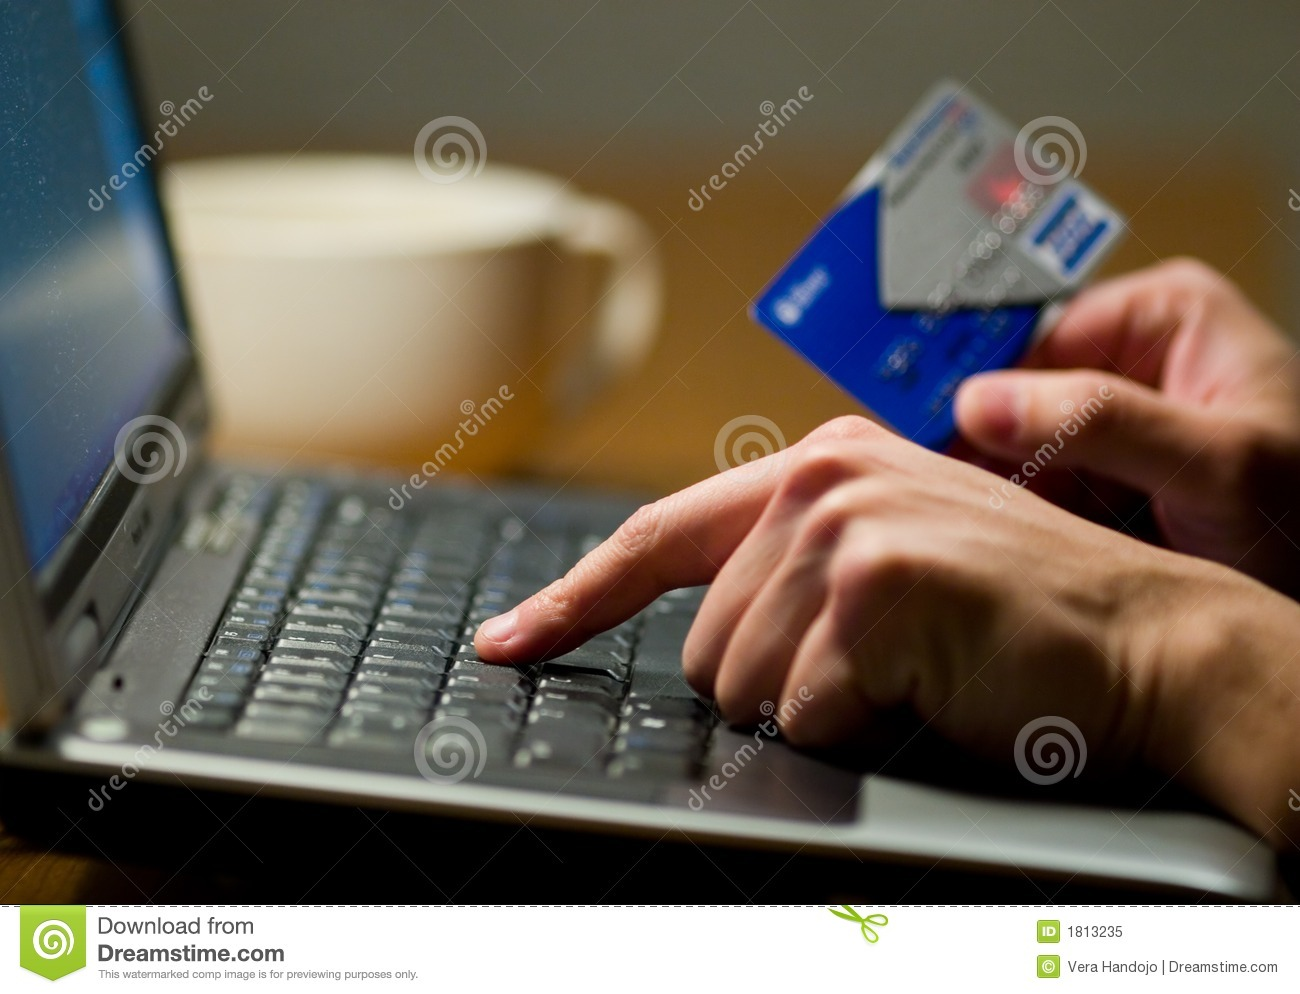 Internetshopping